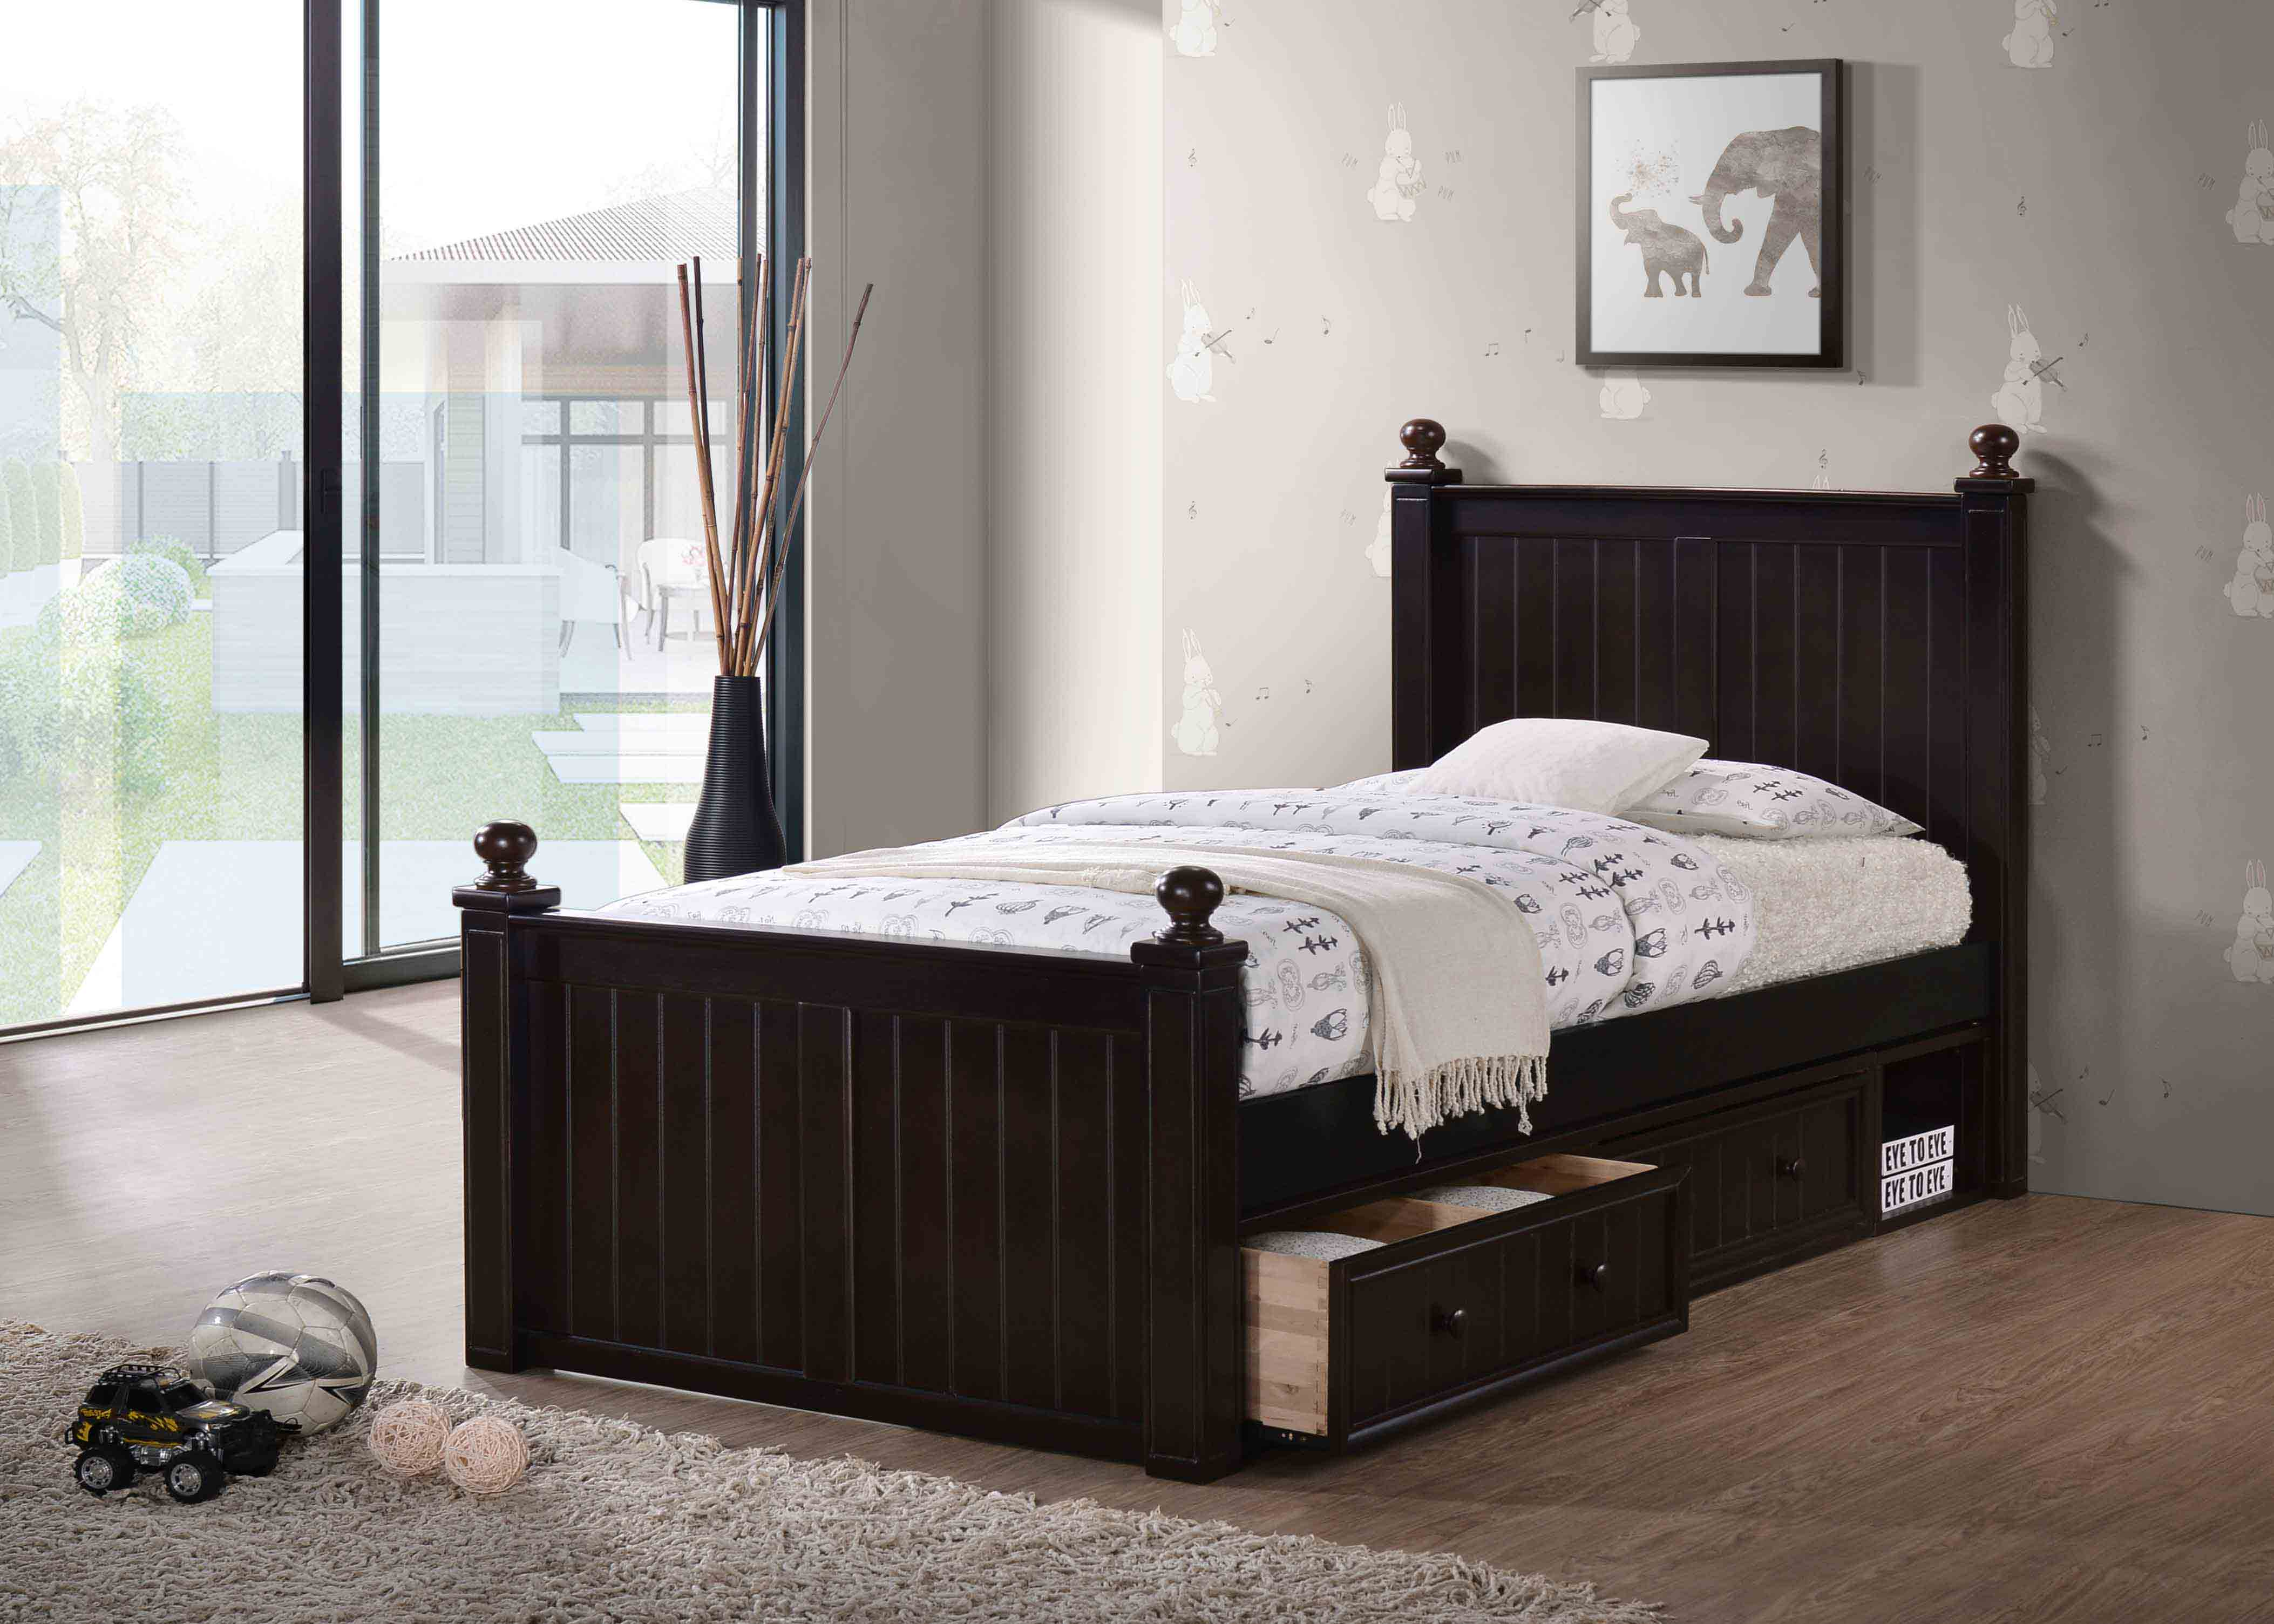 frame single with htm rest bedmaster delivery next select p maya pine bed beds mattress quilted day wooden